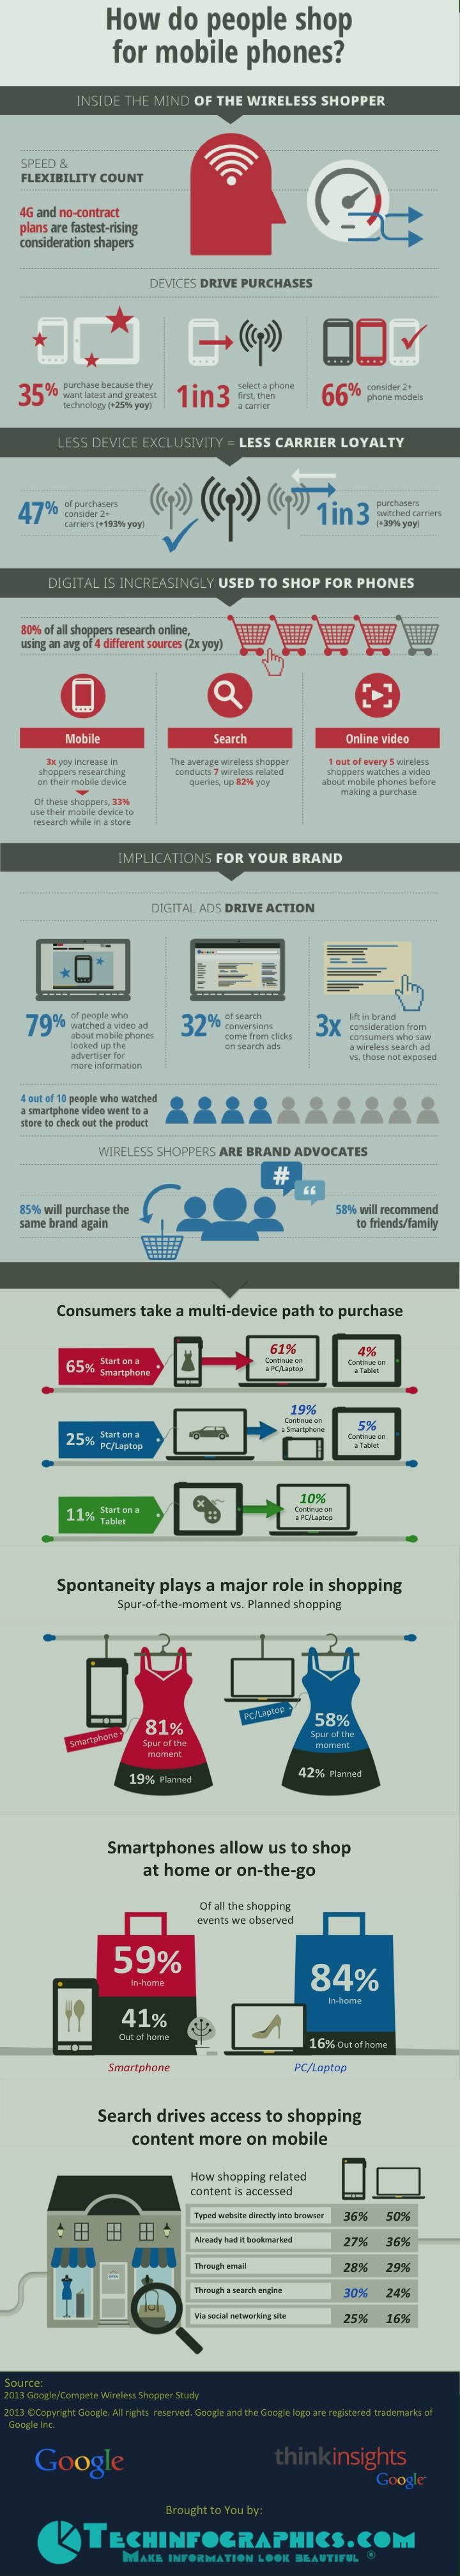 Mobile Marketing Infographic - Mobile Shopping Trends and Statistics 2014